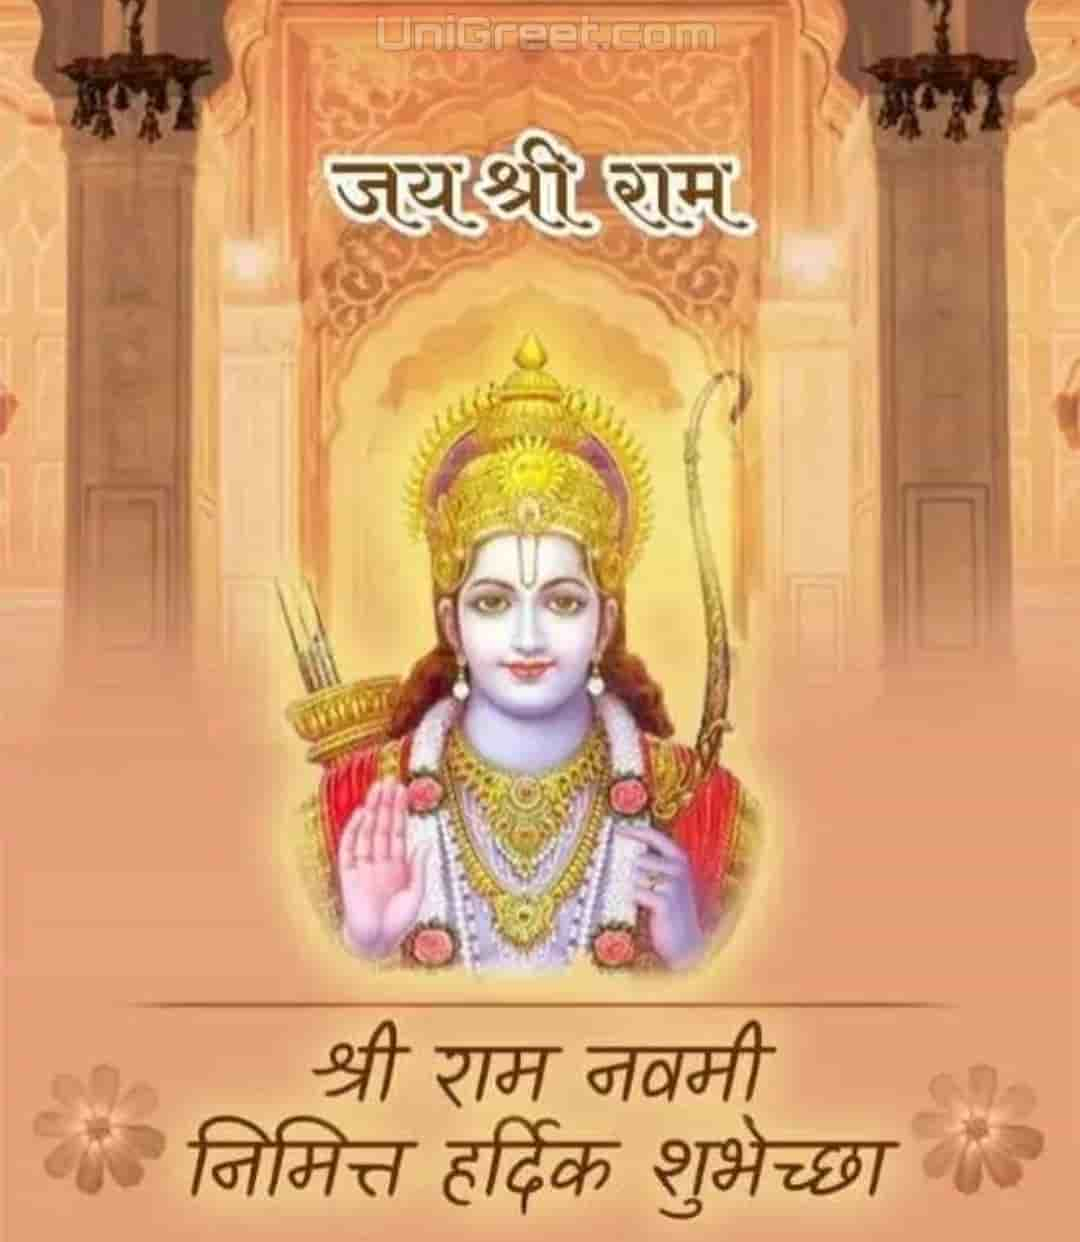 Best Ram Navami Status Photos Wishes Images In Marathi For WhatsApp